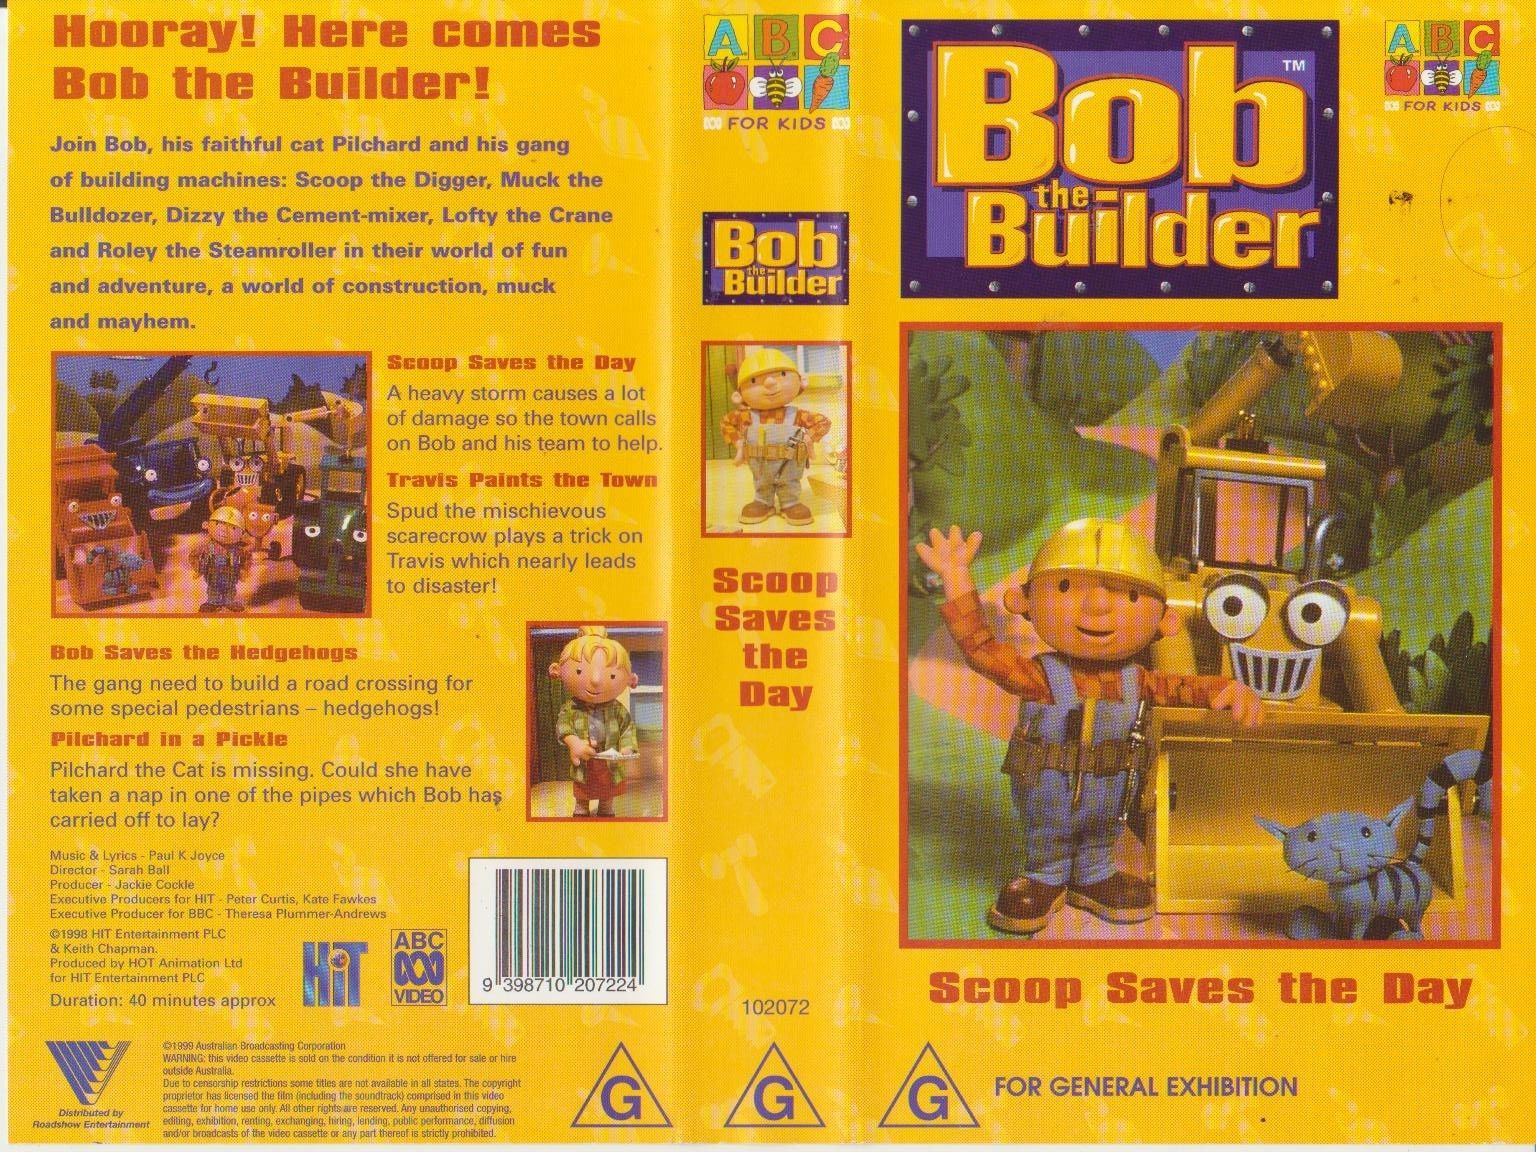 Bob the Builder Videography